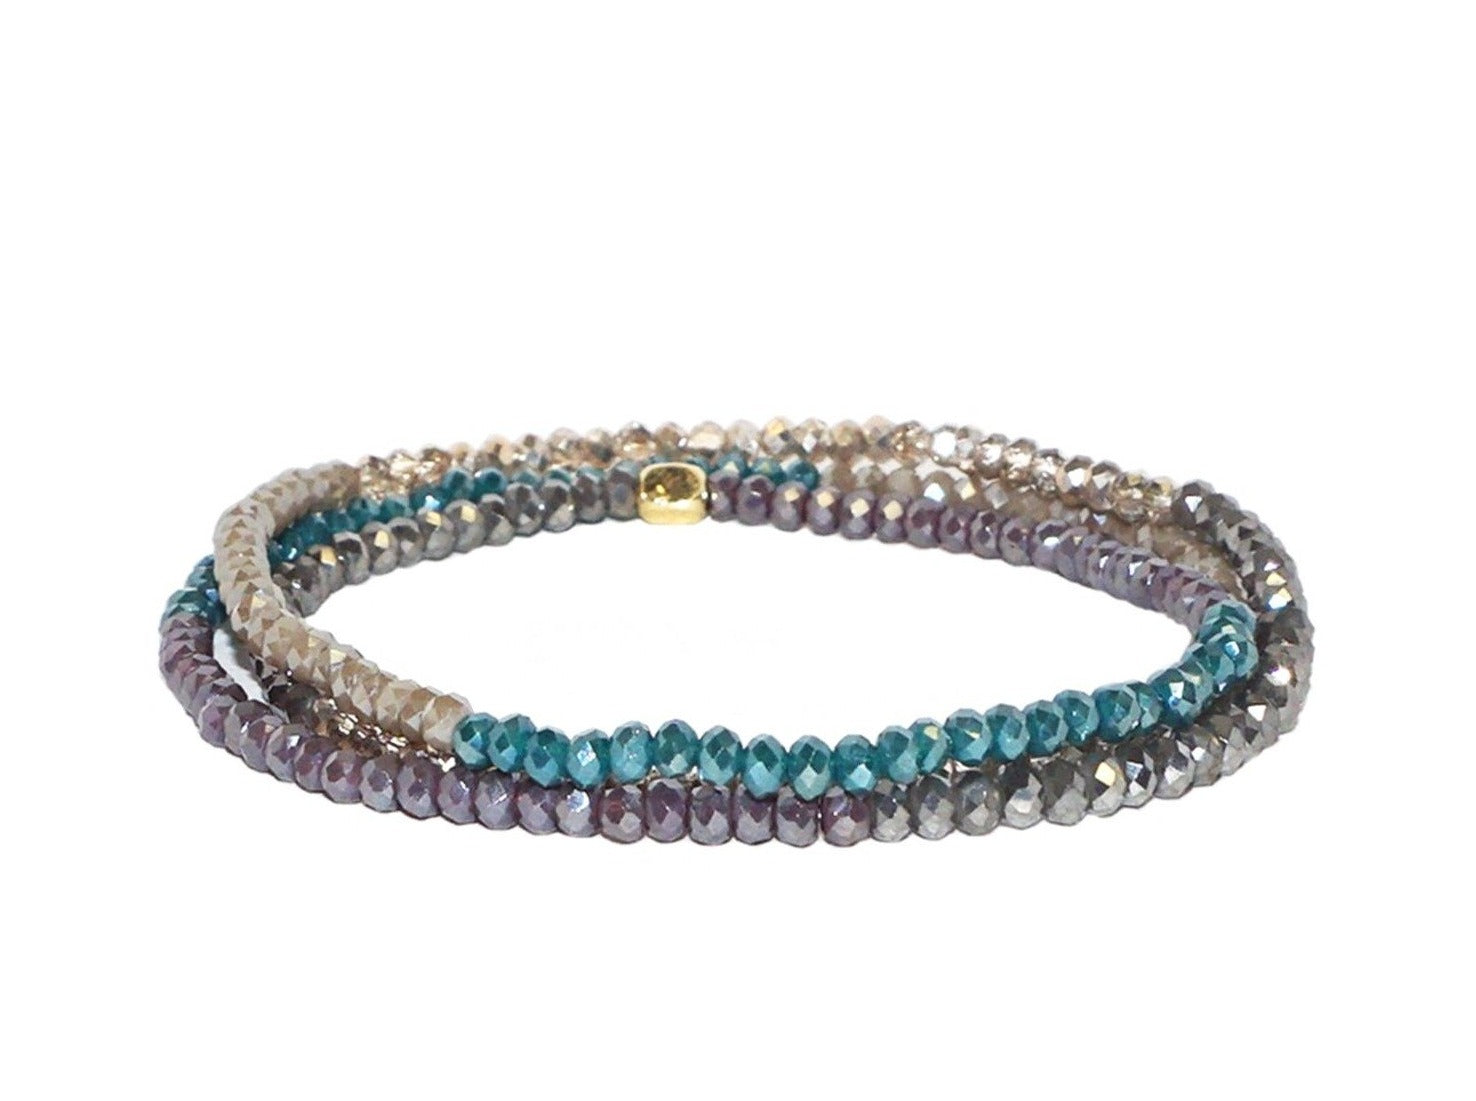 Crystal Beaded Stretch Bracelet - Teal